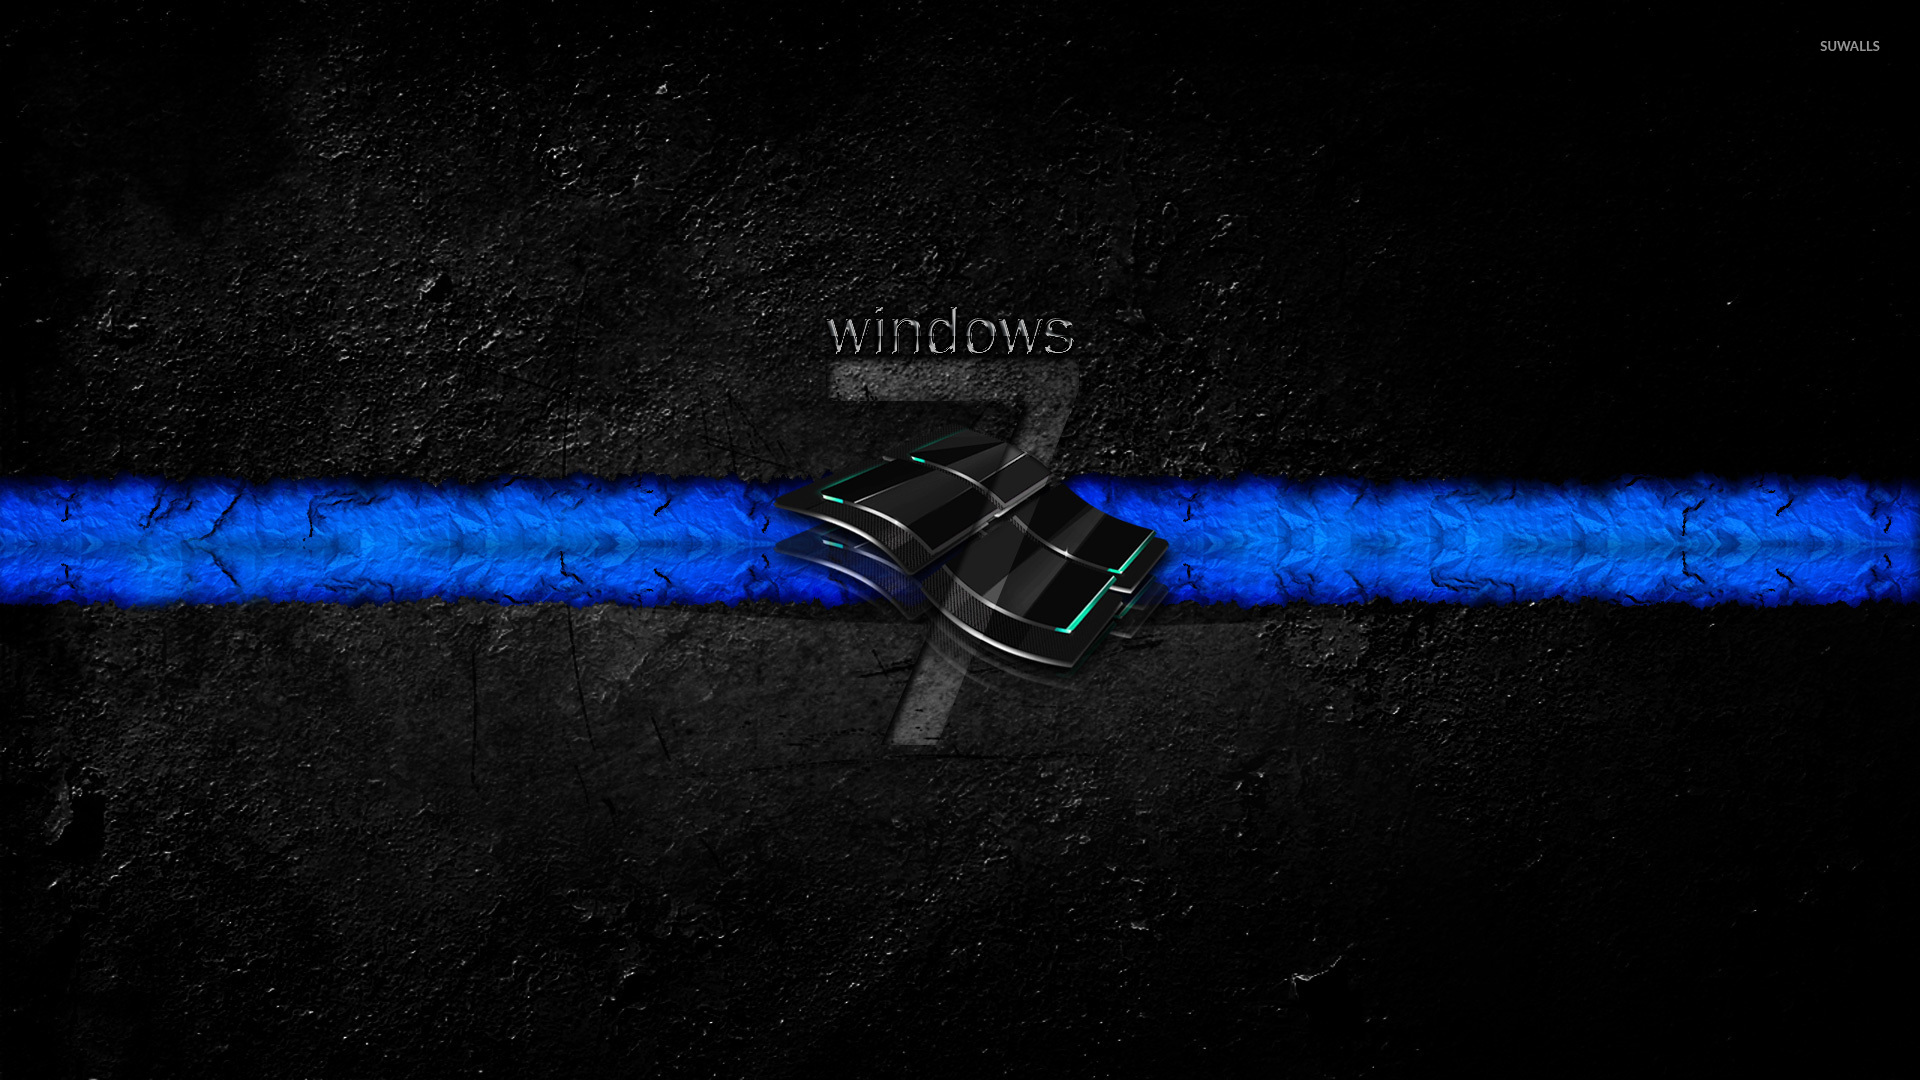 Windows 7 Logo On The Gray Wall Wallpaper Computer Wallpapers